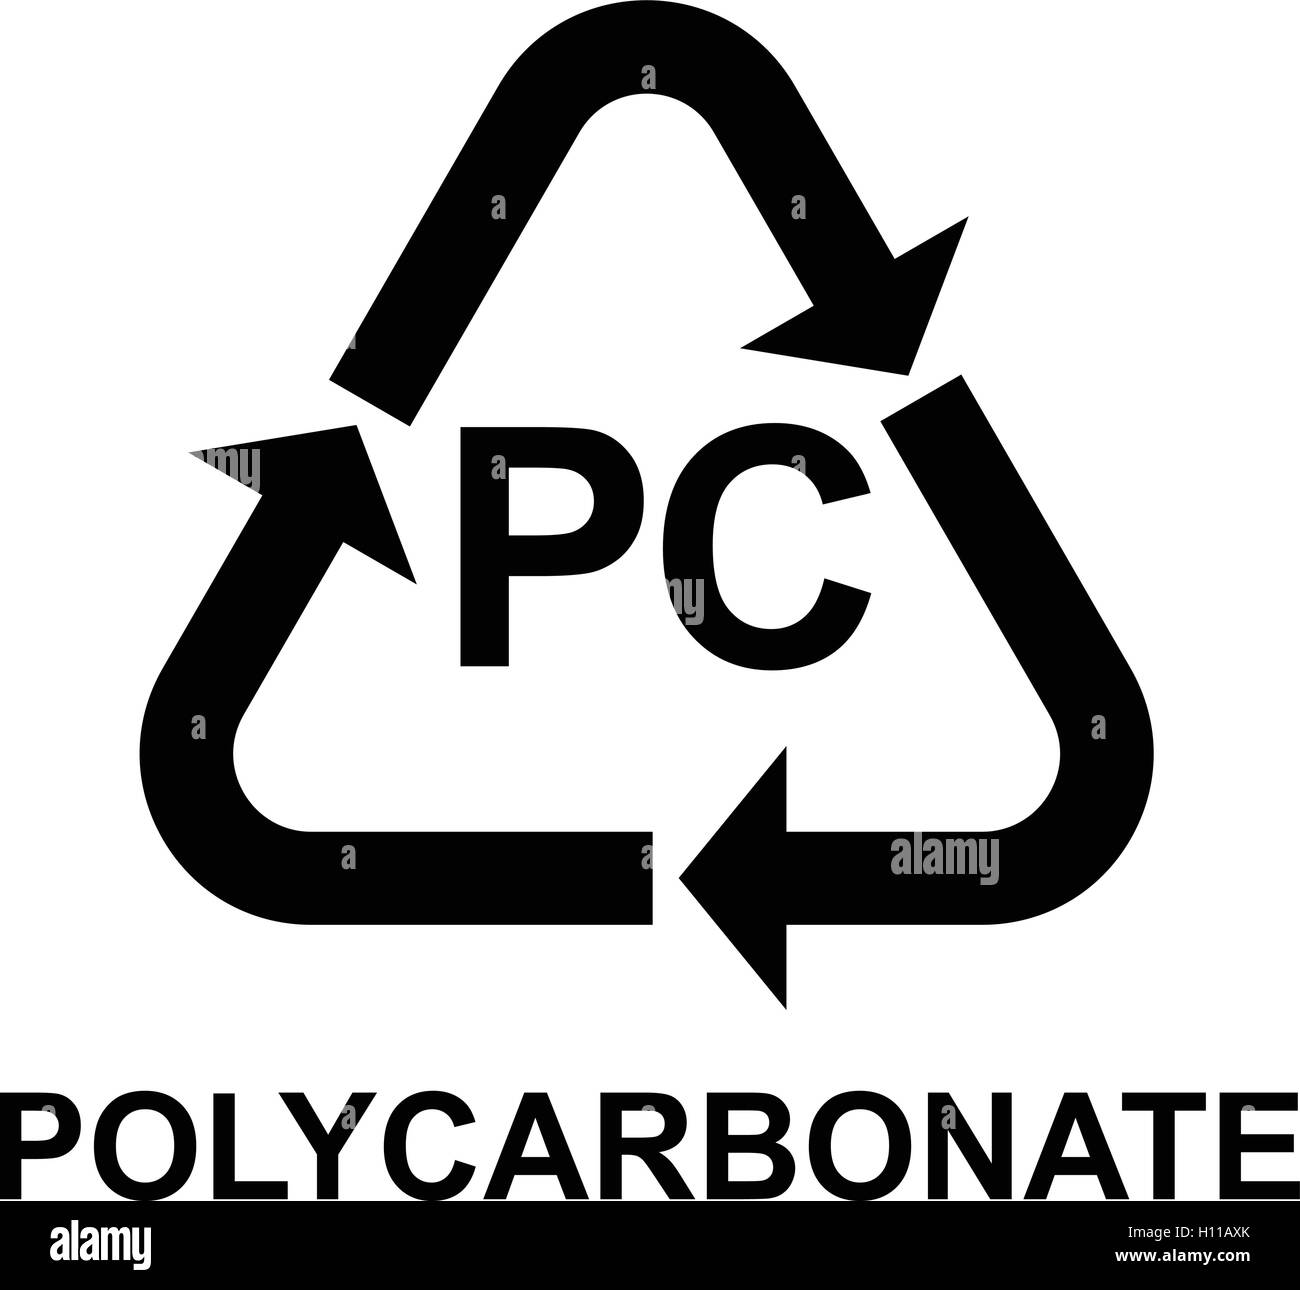 Plastic Recycling Symbol Pc Polycarbonate Vector Illustration